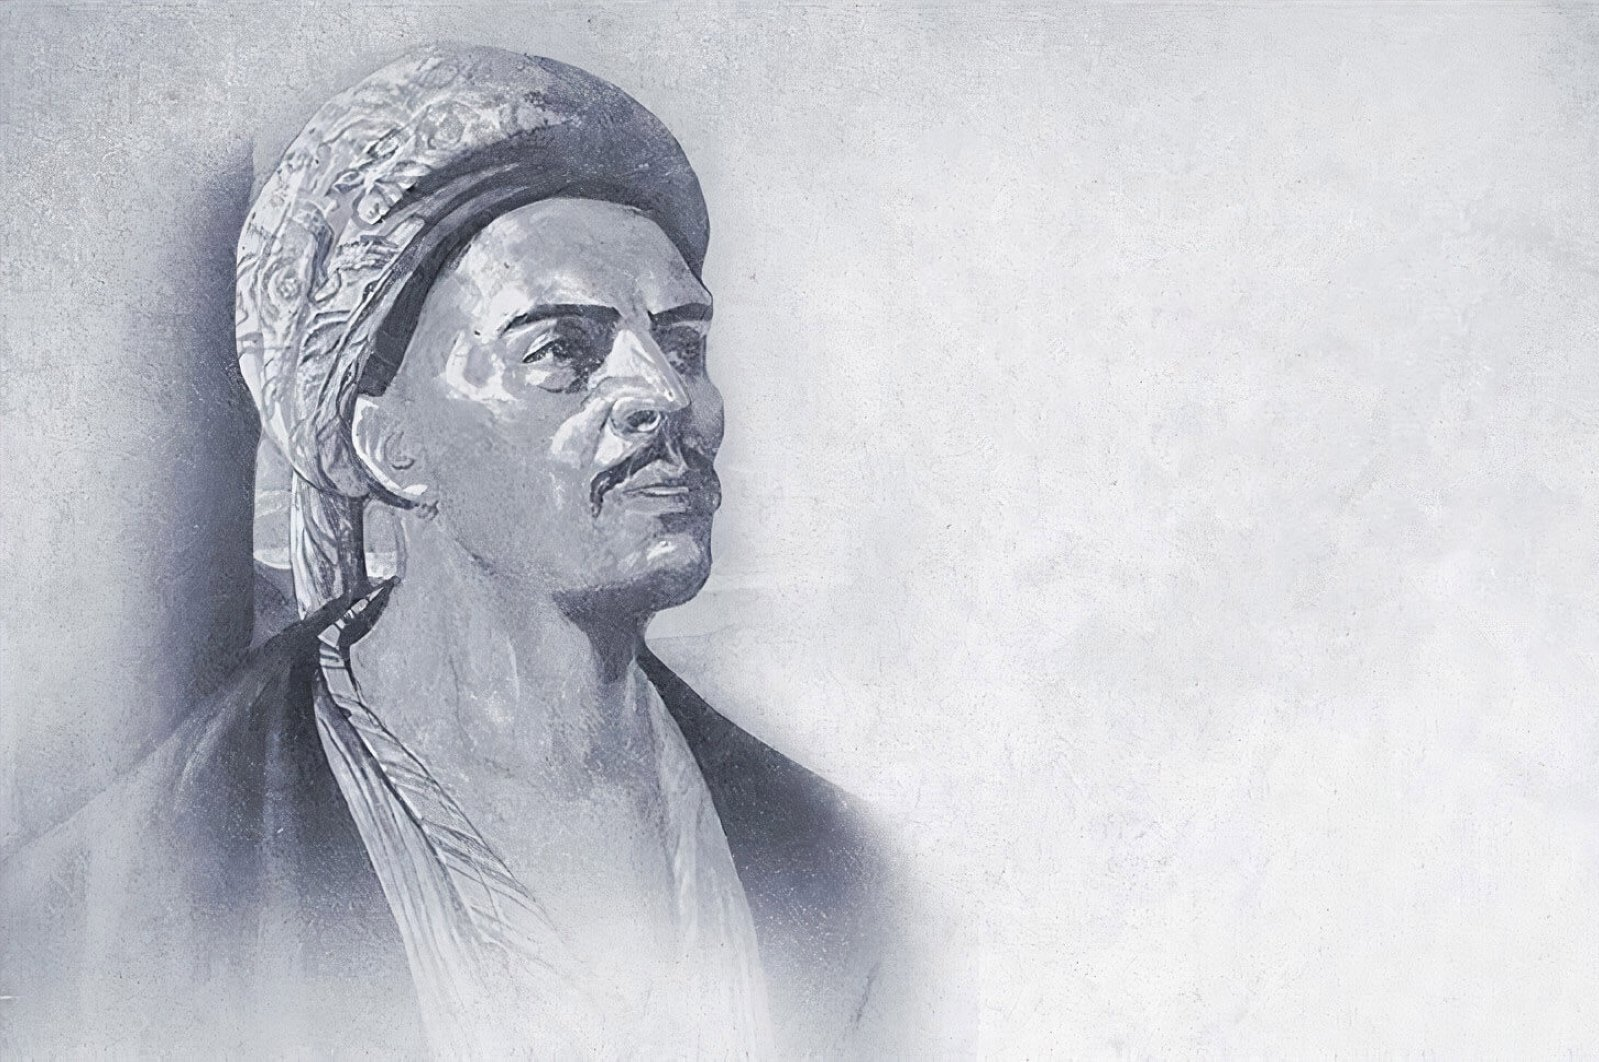 As there is no available visual representation of Yunus Emre, this common depiction is used to portray him. (AA Photo)